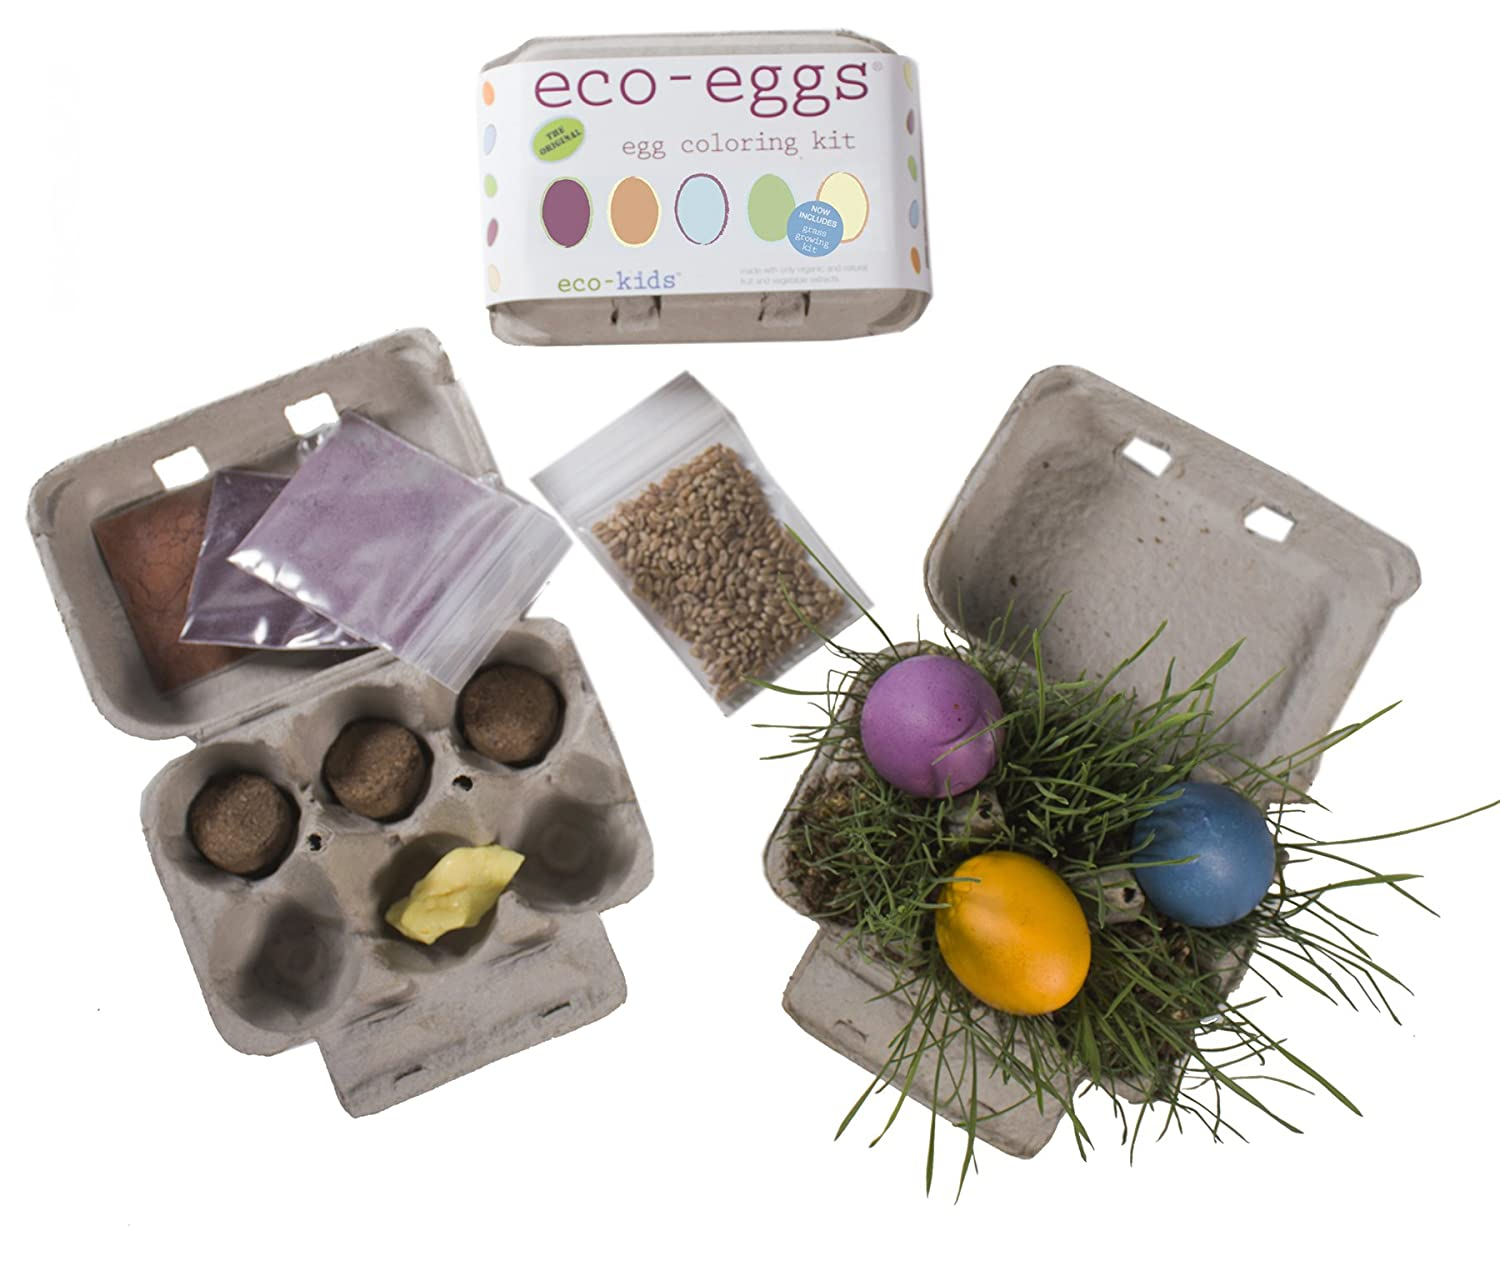 eco eggs coloring kit amazoncom grocery gourmet food